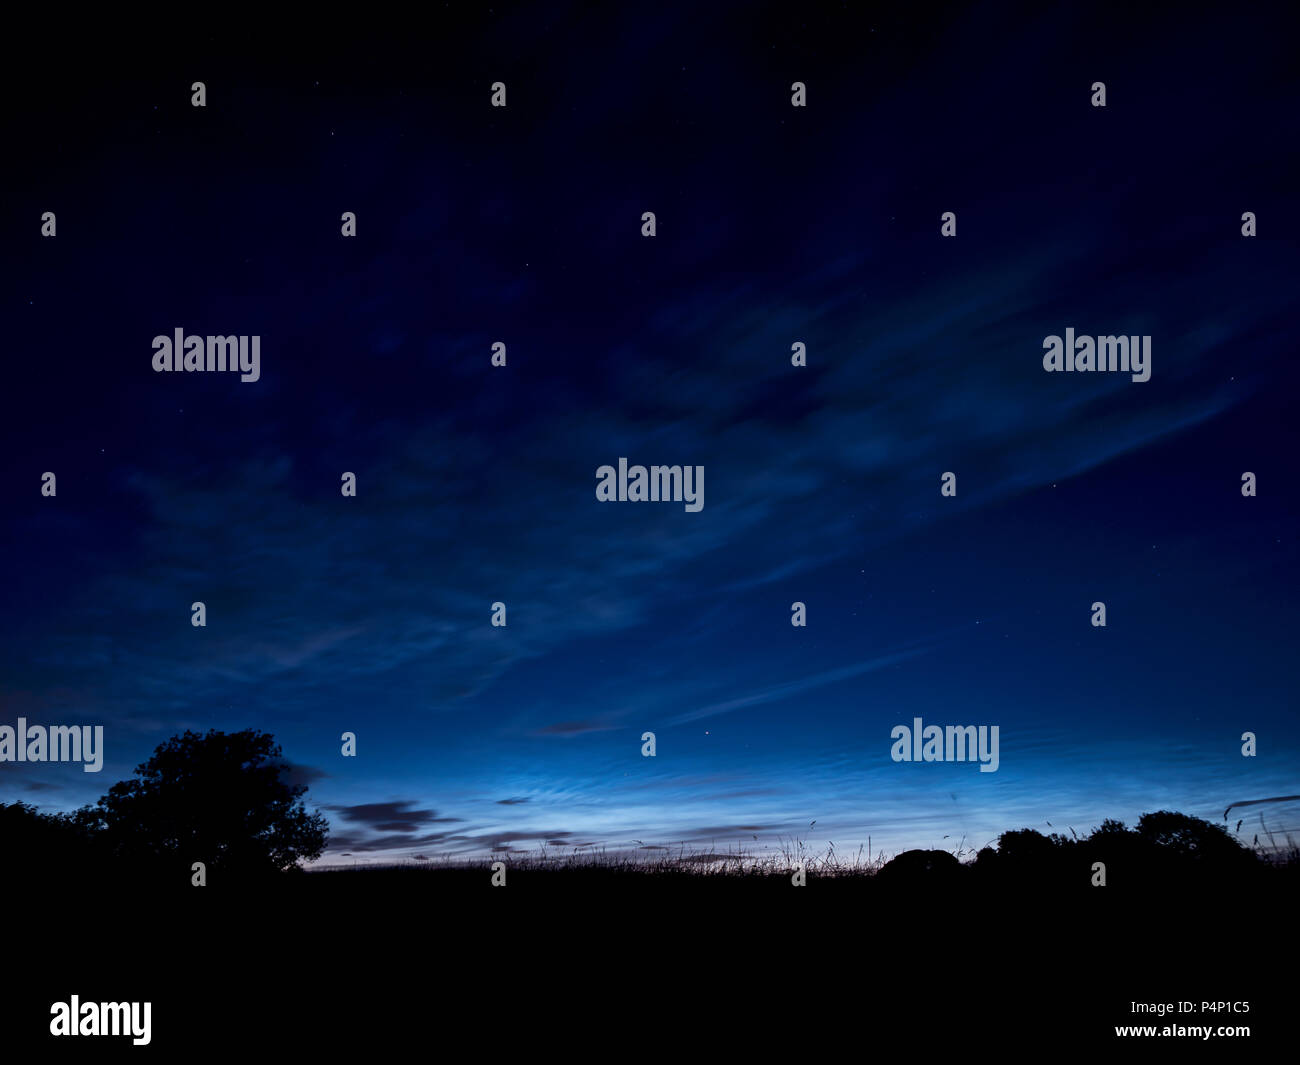 Weather UK: Amazingly bright sunlight on the horizon in the night sky over Ashbourne, Derbyshire after the Summer solstice taken after 1am on Saturday 23rd June 2018 taken facing due North East towards The Peak District National Park Credit: Doug Blane/Alamy Live News - Stock Image